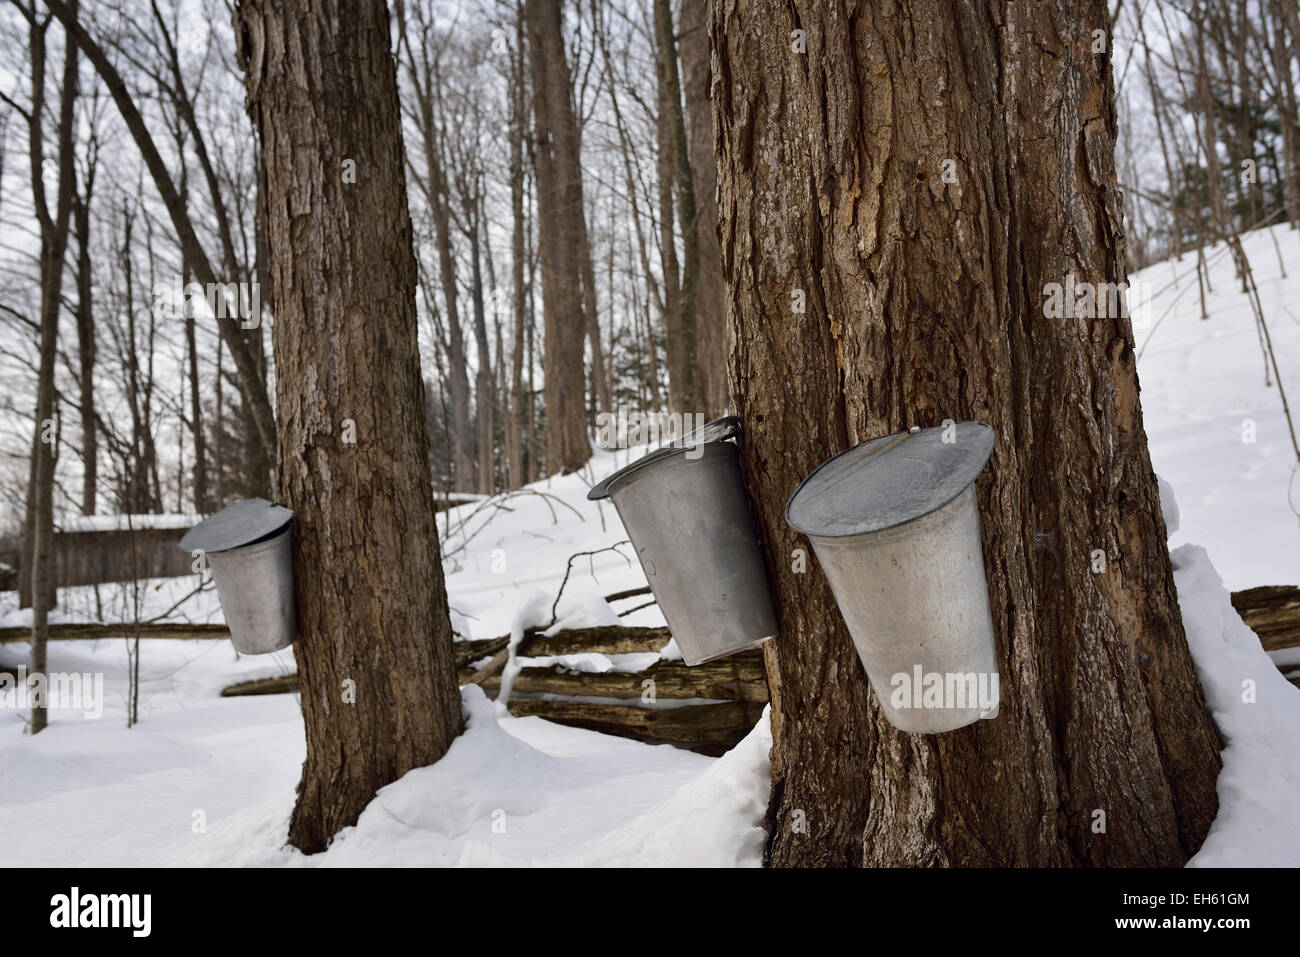 Buckets tapping old sugar Maple trees in Ontario forest to collect sap for syrup  with snow Canada - Stock Image